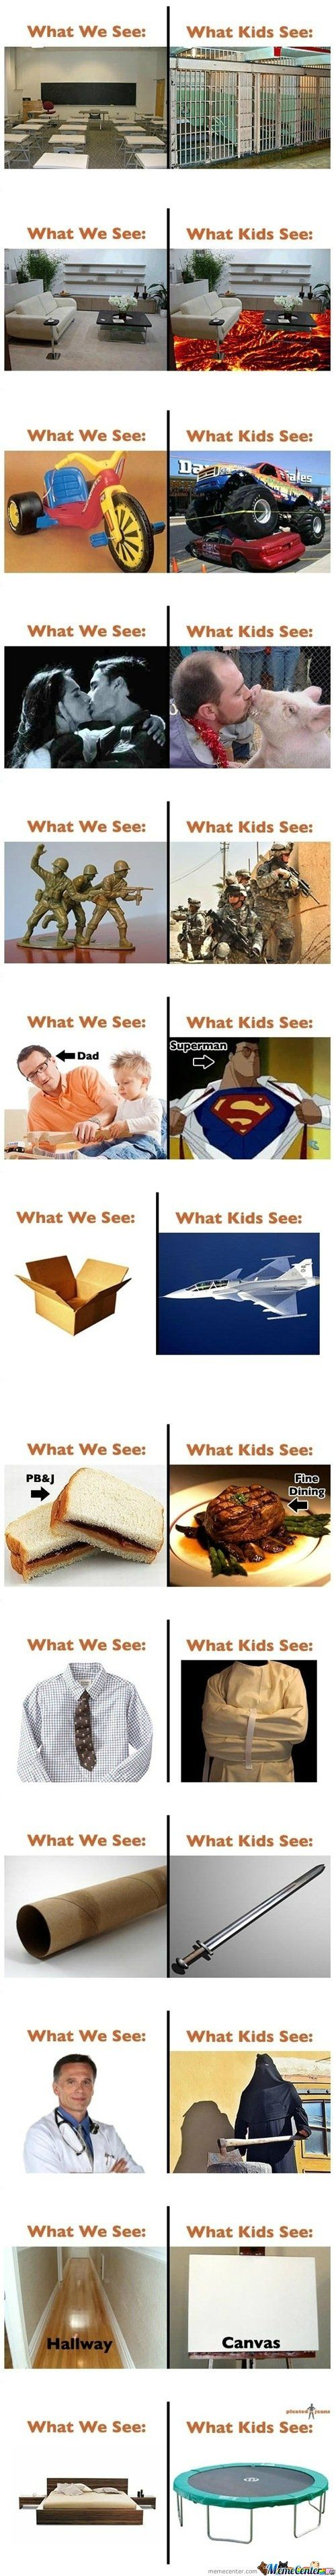 Through the eyes of a child...